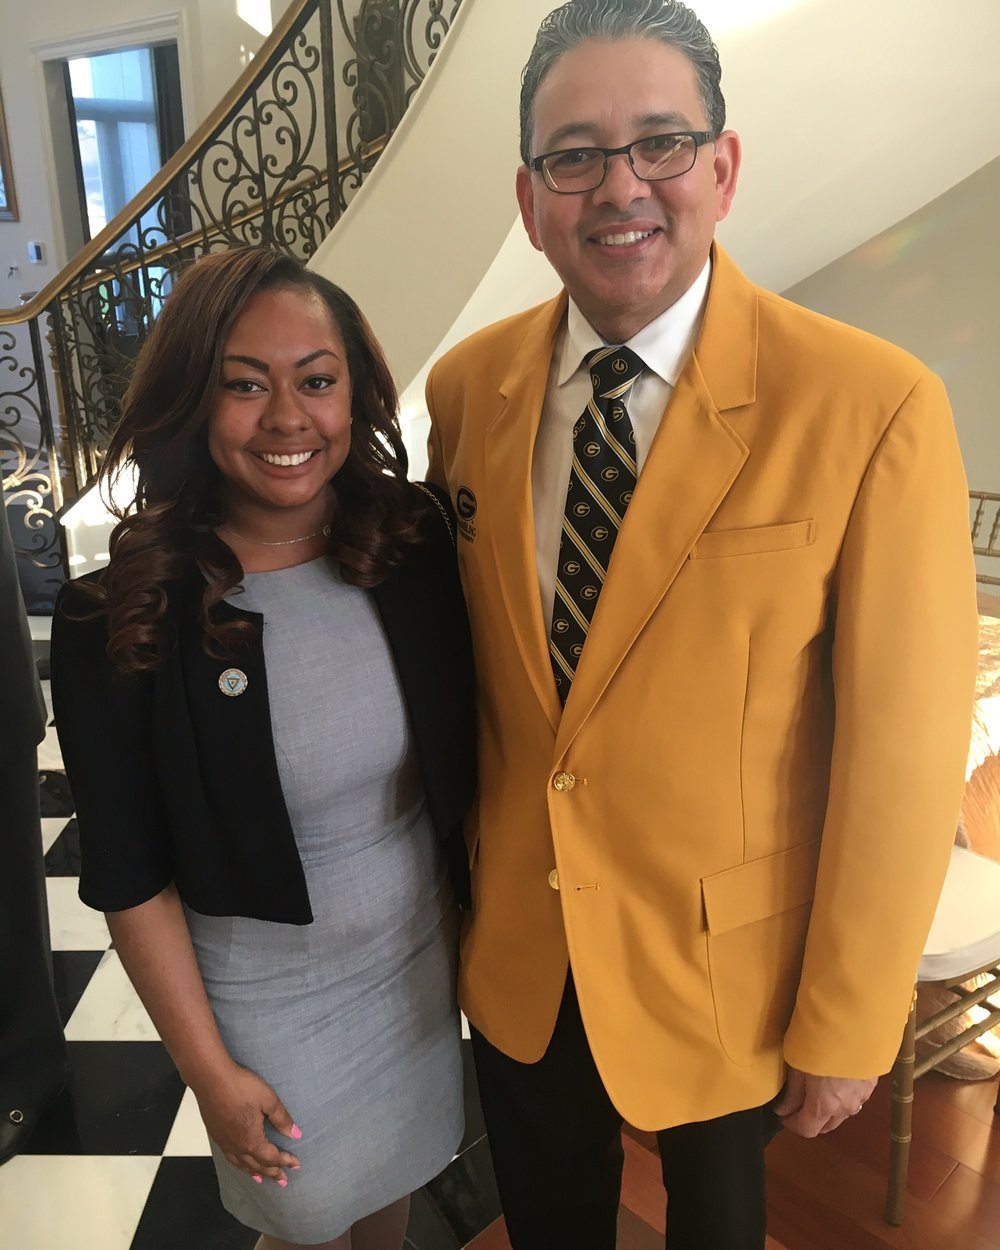 President of Grambling State University & I at GSU's Fundraiser in New Orleans